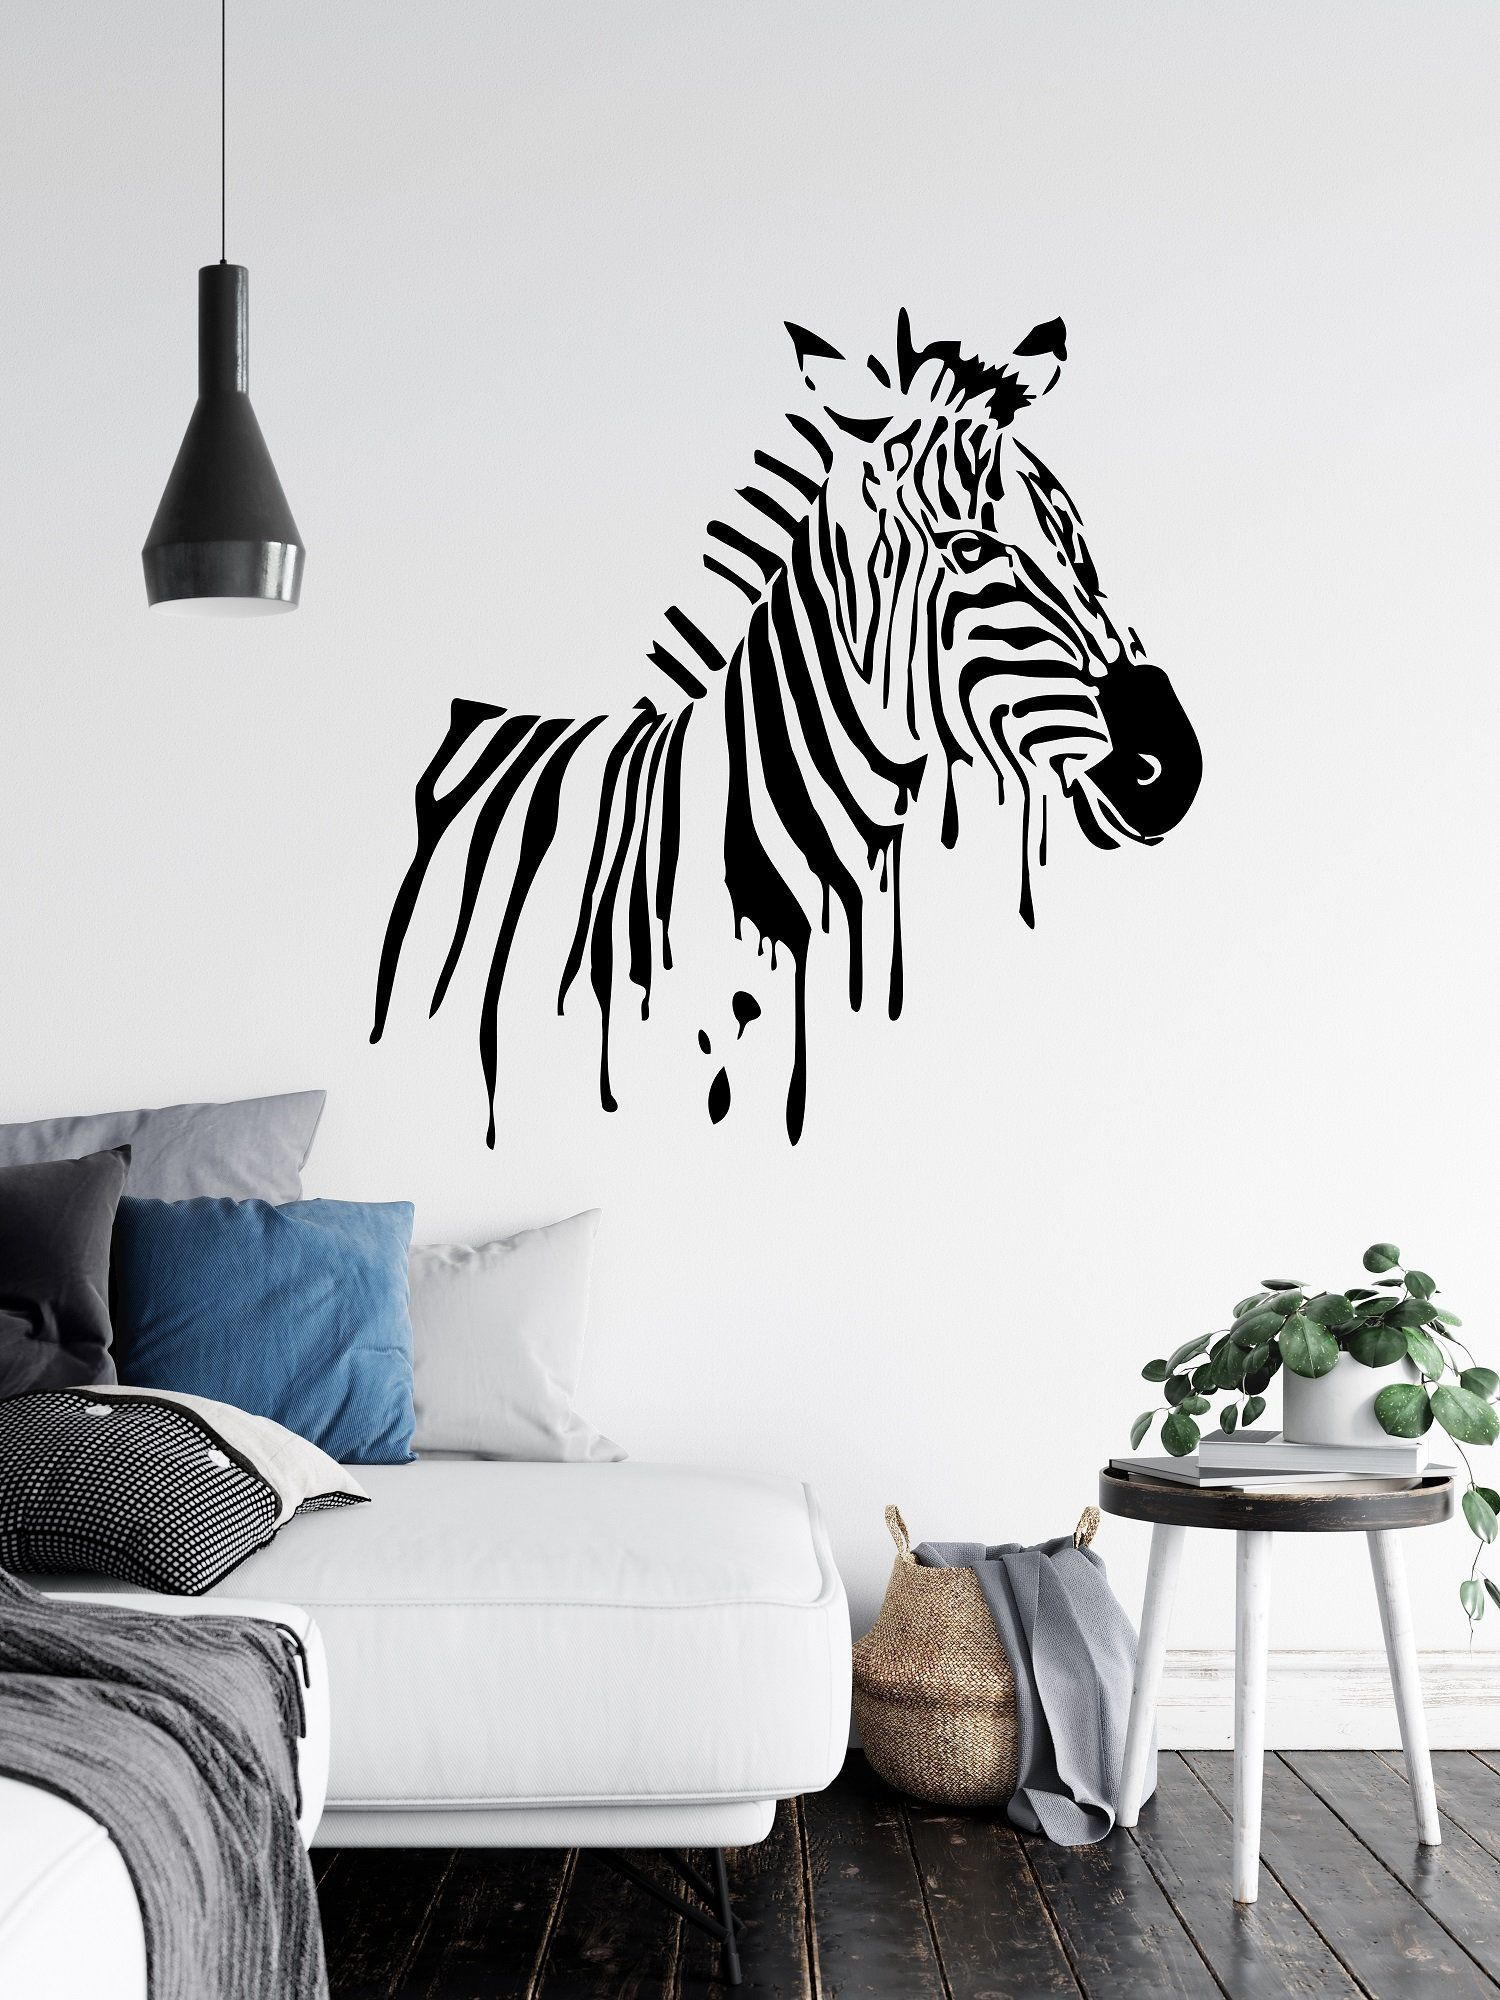 Zebra Wall Decal Zebra Wall Decor African Wall Decal Safari Animals Decal Wall Decoration Living Room Bedroom Animals Wall Decor Sb122 In 2020 Zebra Wall Decor Zebra Wall Decals Zebra Wall